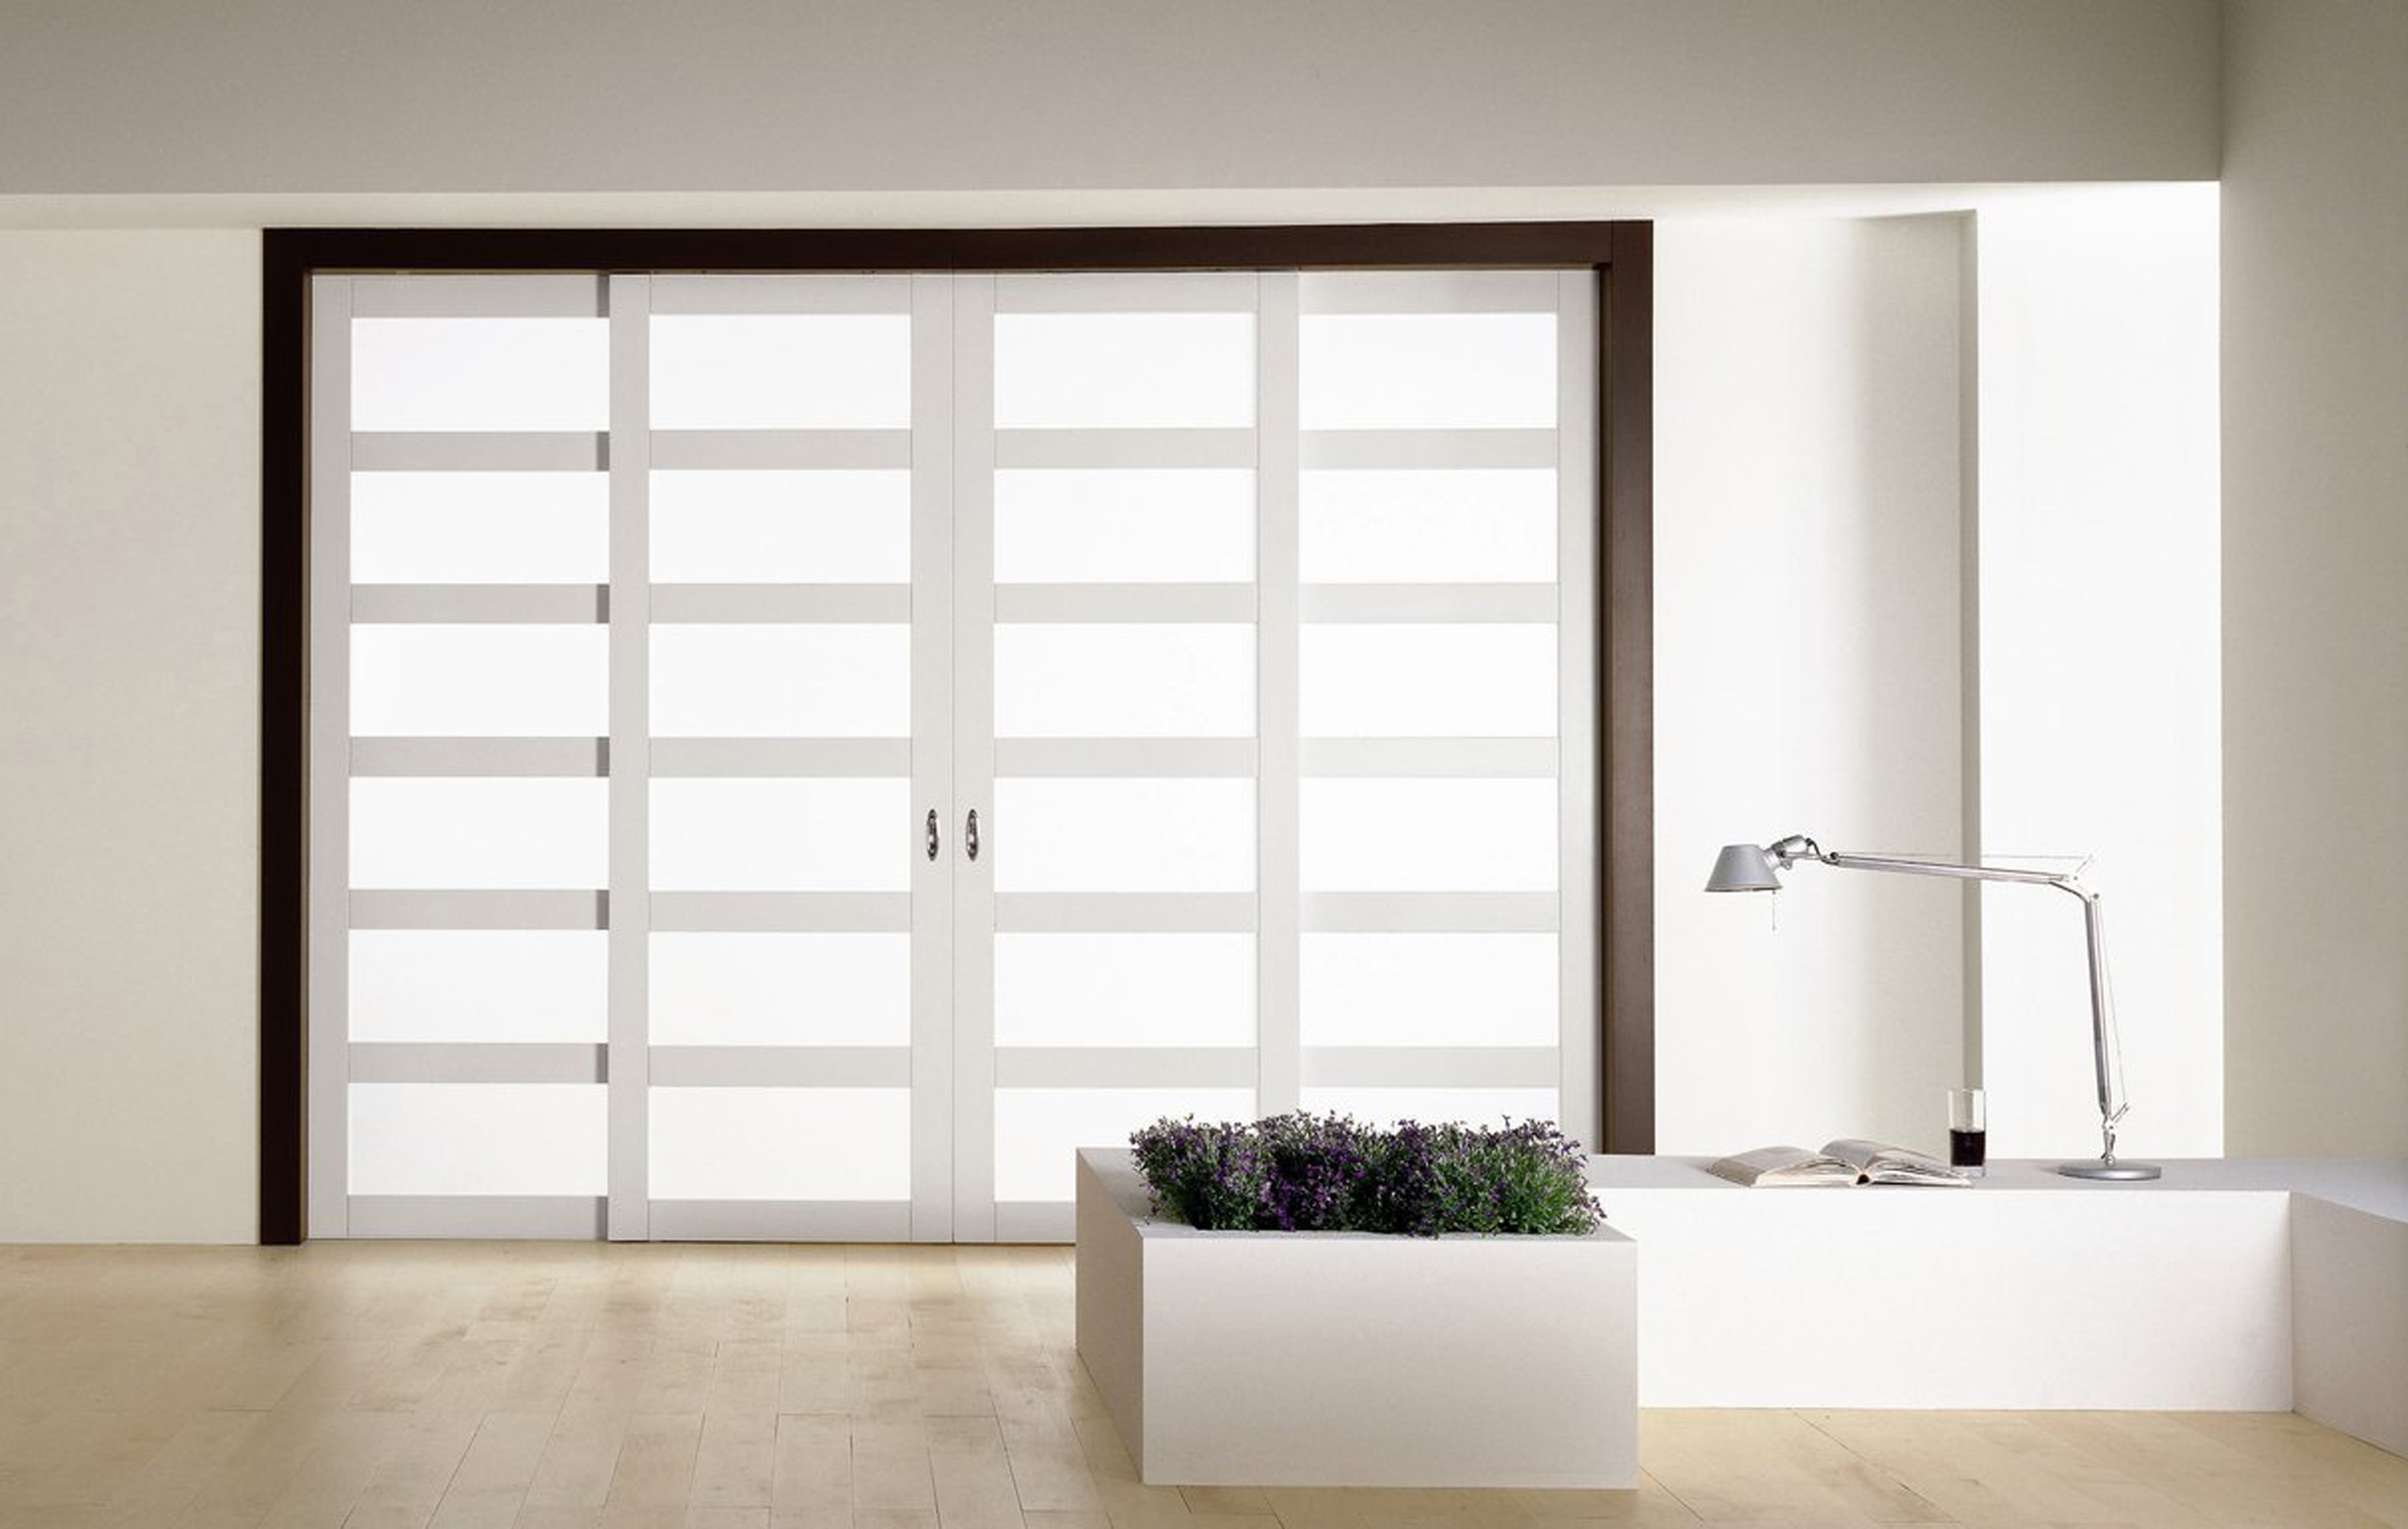 Luxurious White Sliding Door Design Inspiration With White Wall And Cream Floor Tile Great Sliding Door Design Inspiration (Image 35 of 123)